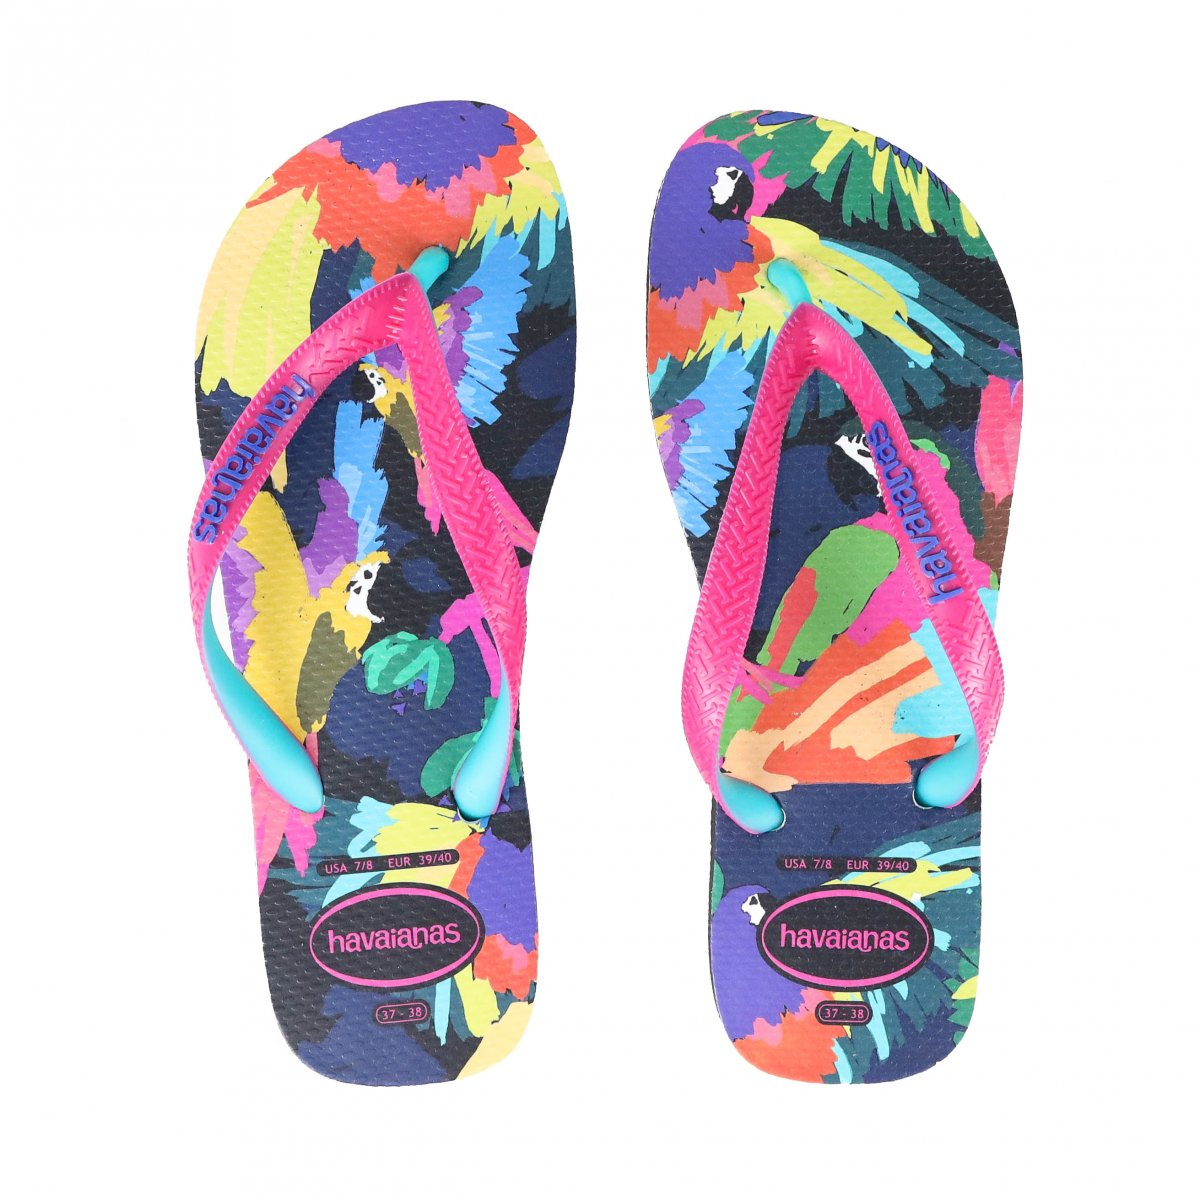 Chinelo Casual Havaianas Top Fashion Preto